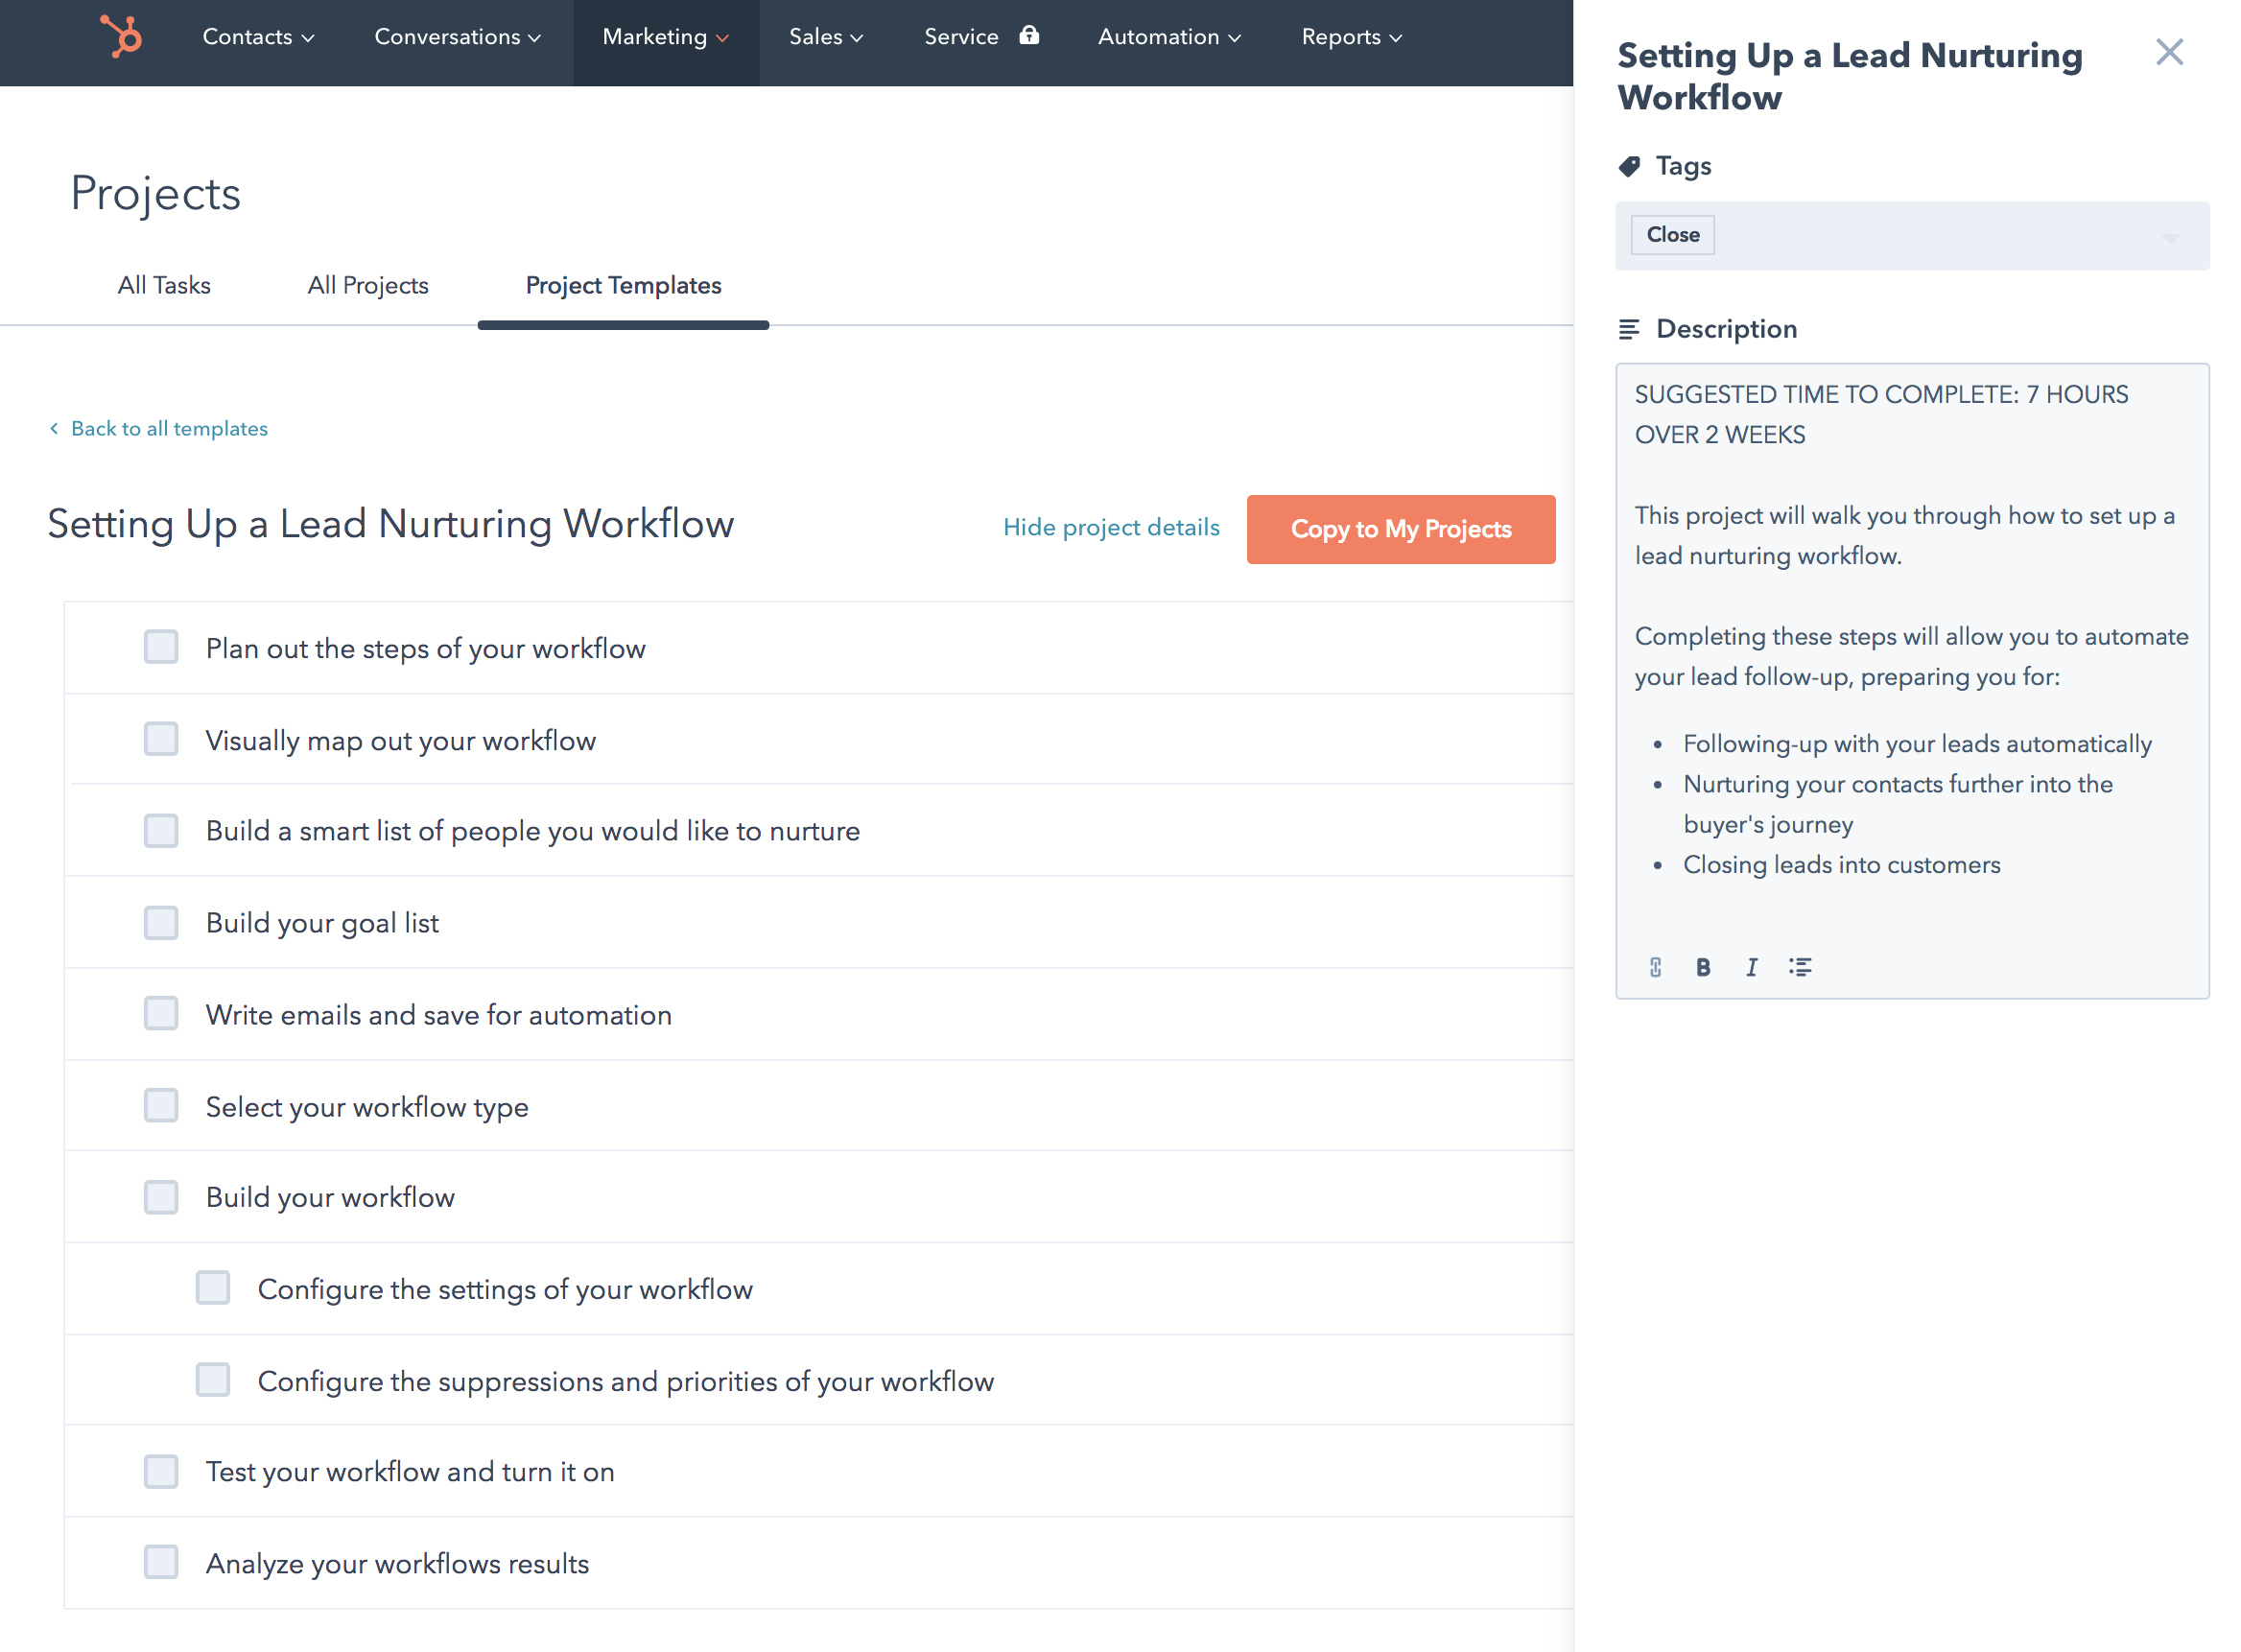 HubSpot Project Template - Lead Nurturing Workflow